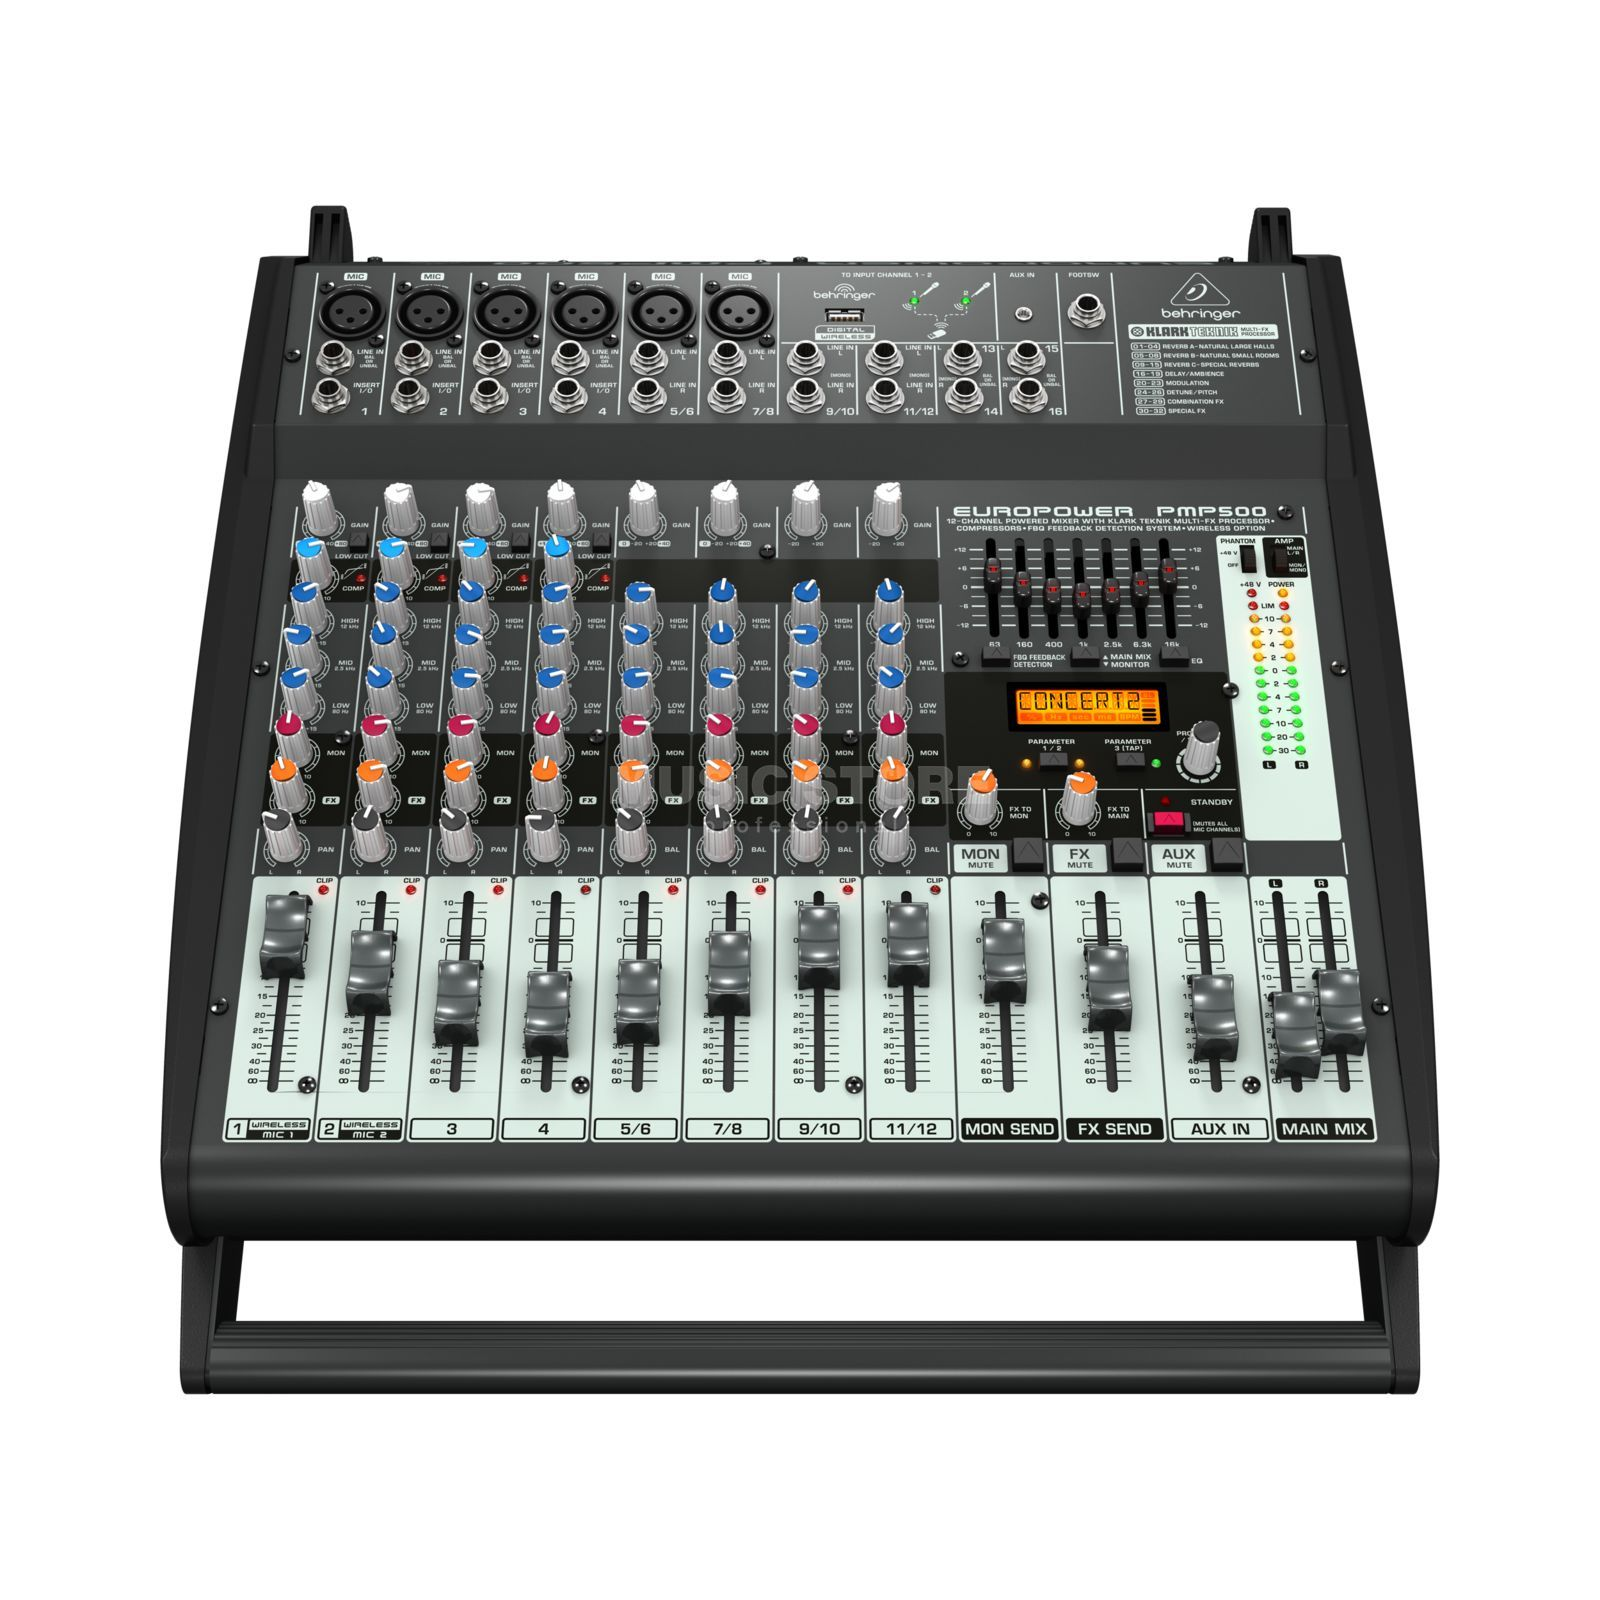 Behringer PMP500 EUROPOWER 500W 12-Channel Powermixer Product Image